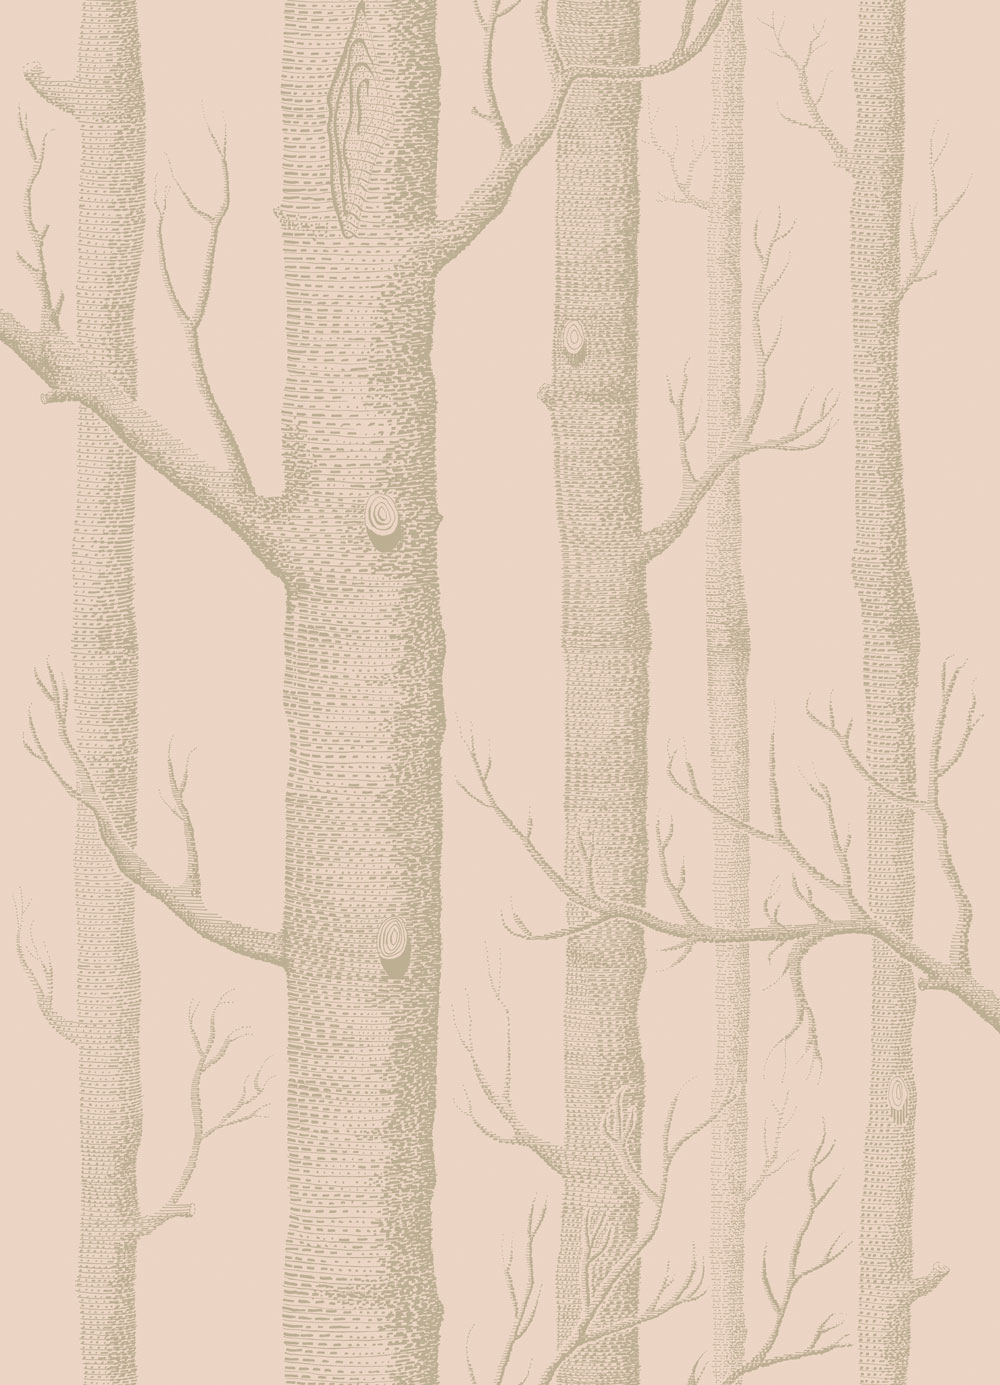 Woods by Cole & Son - Pink and Gilver : Wallpaper Direct